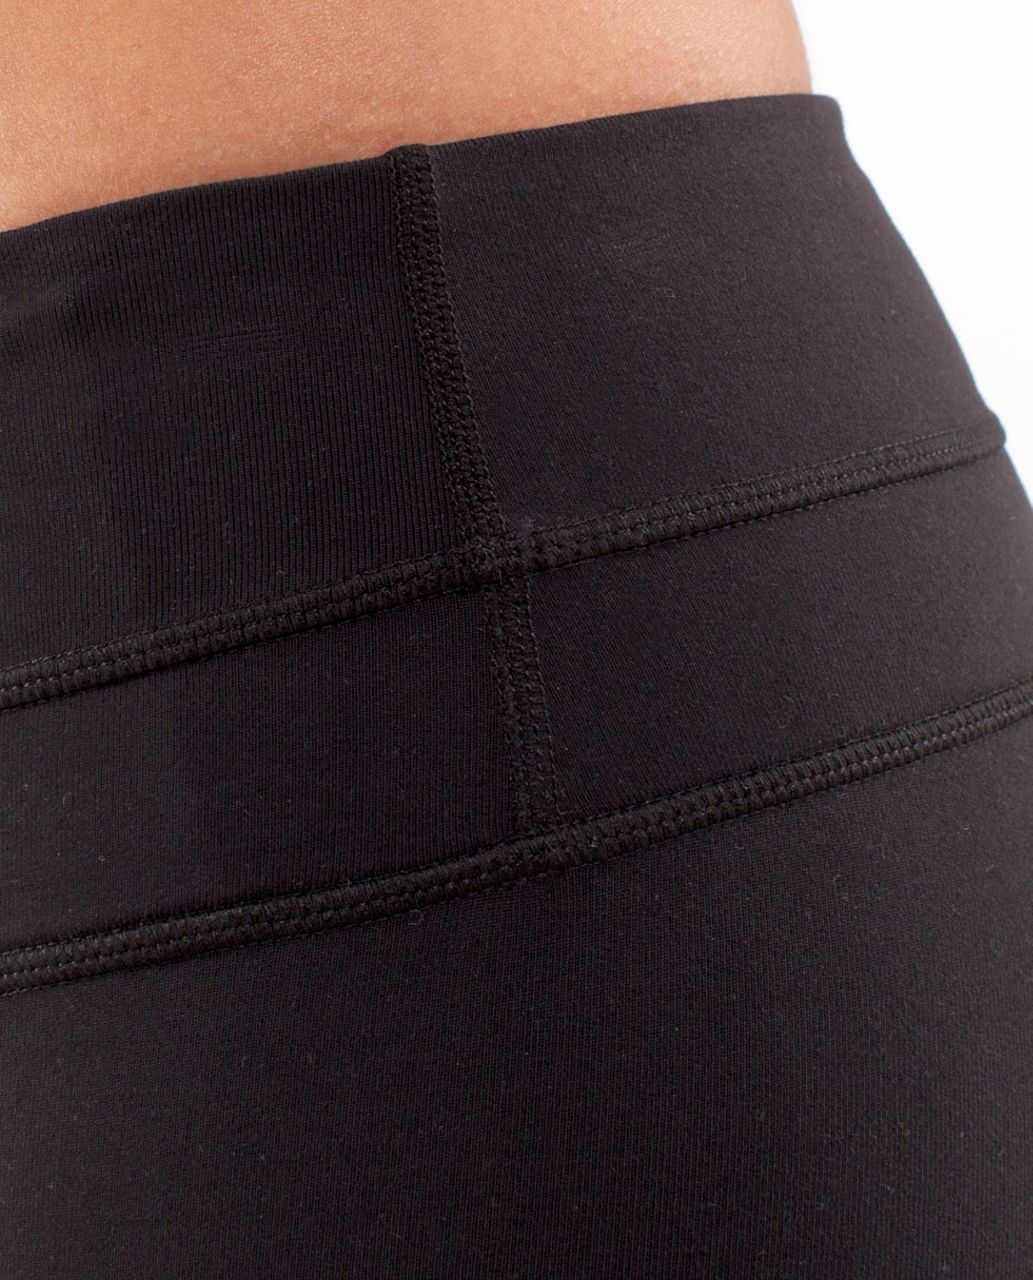 Lululemon Groove Short - Black